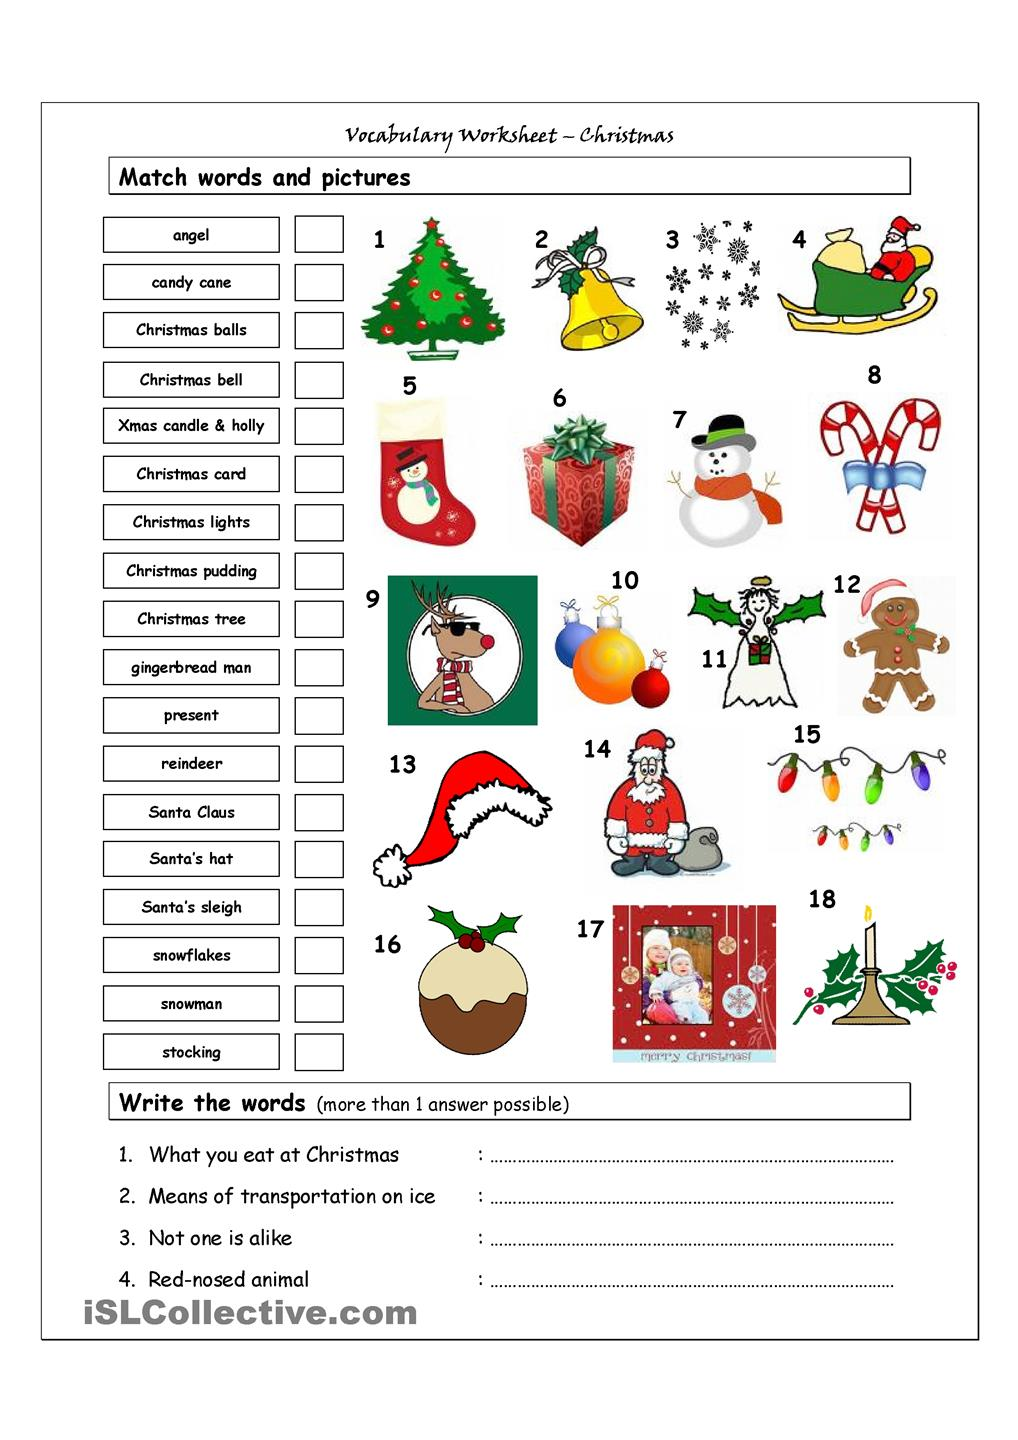 Worksheet Christmas ~ English at Lernforum Chur